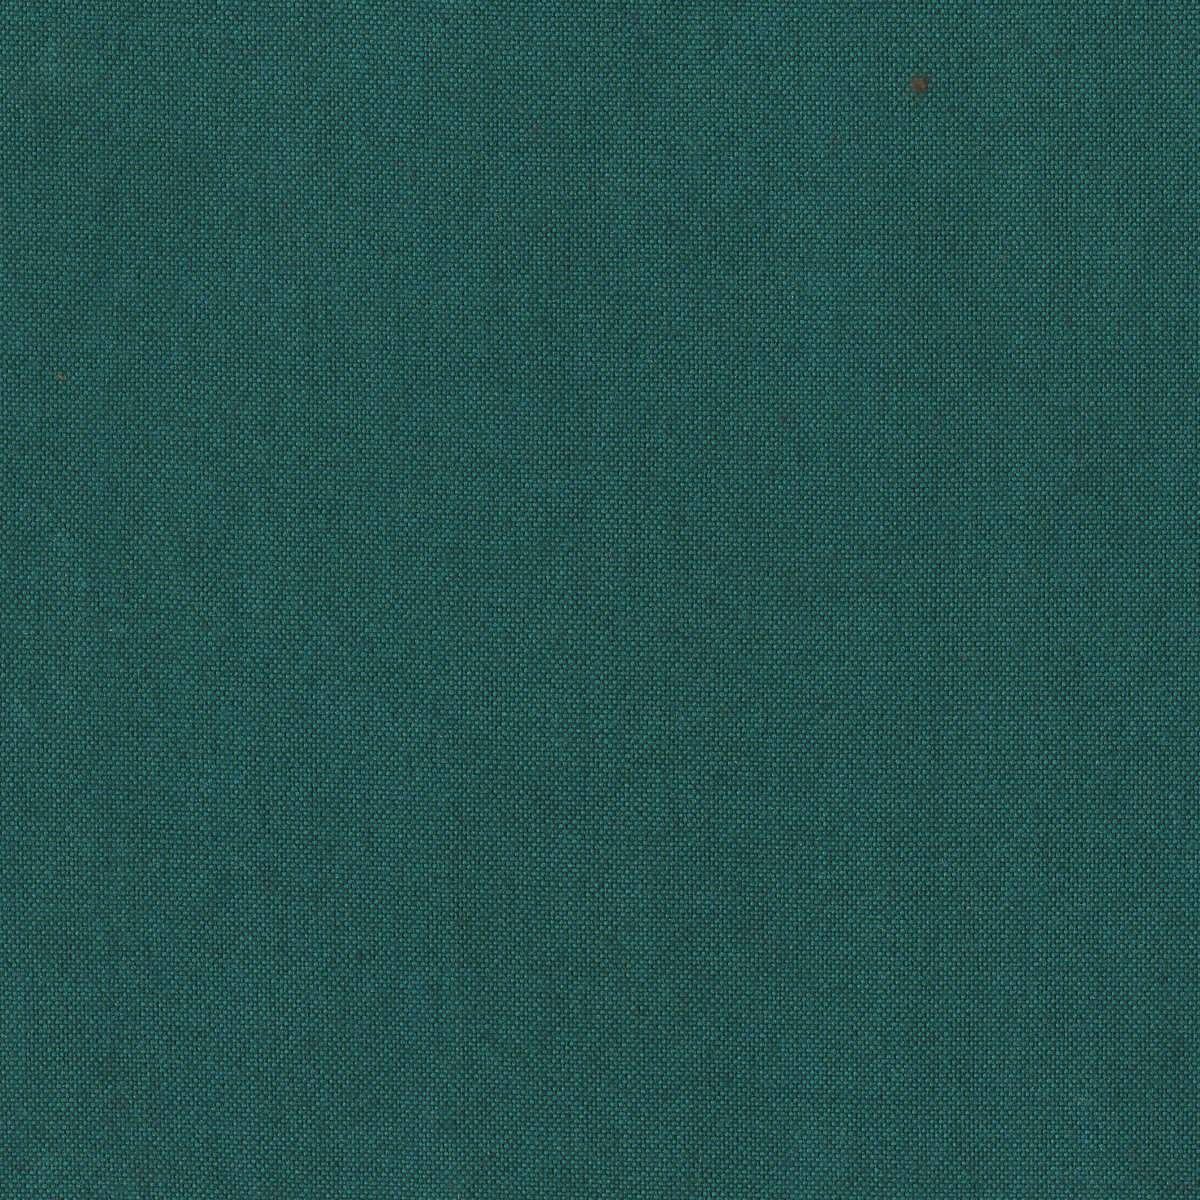 Windham Fabrics Artisan Solid (Teal/Turquoise)